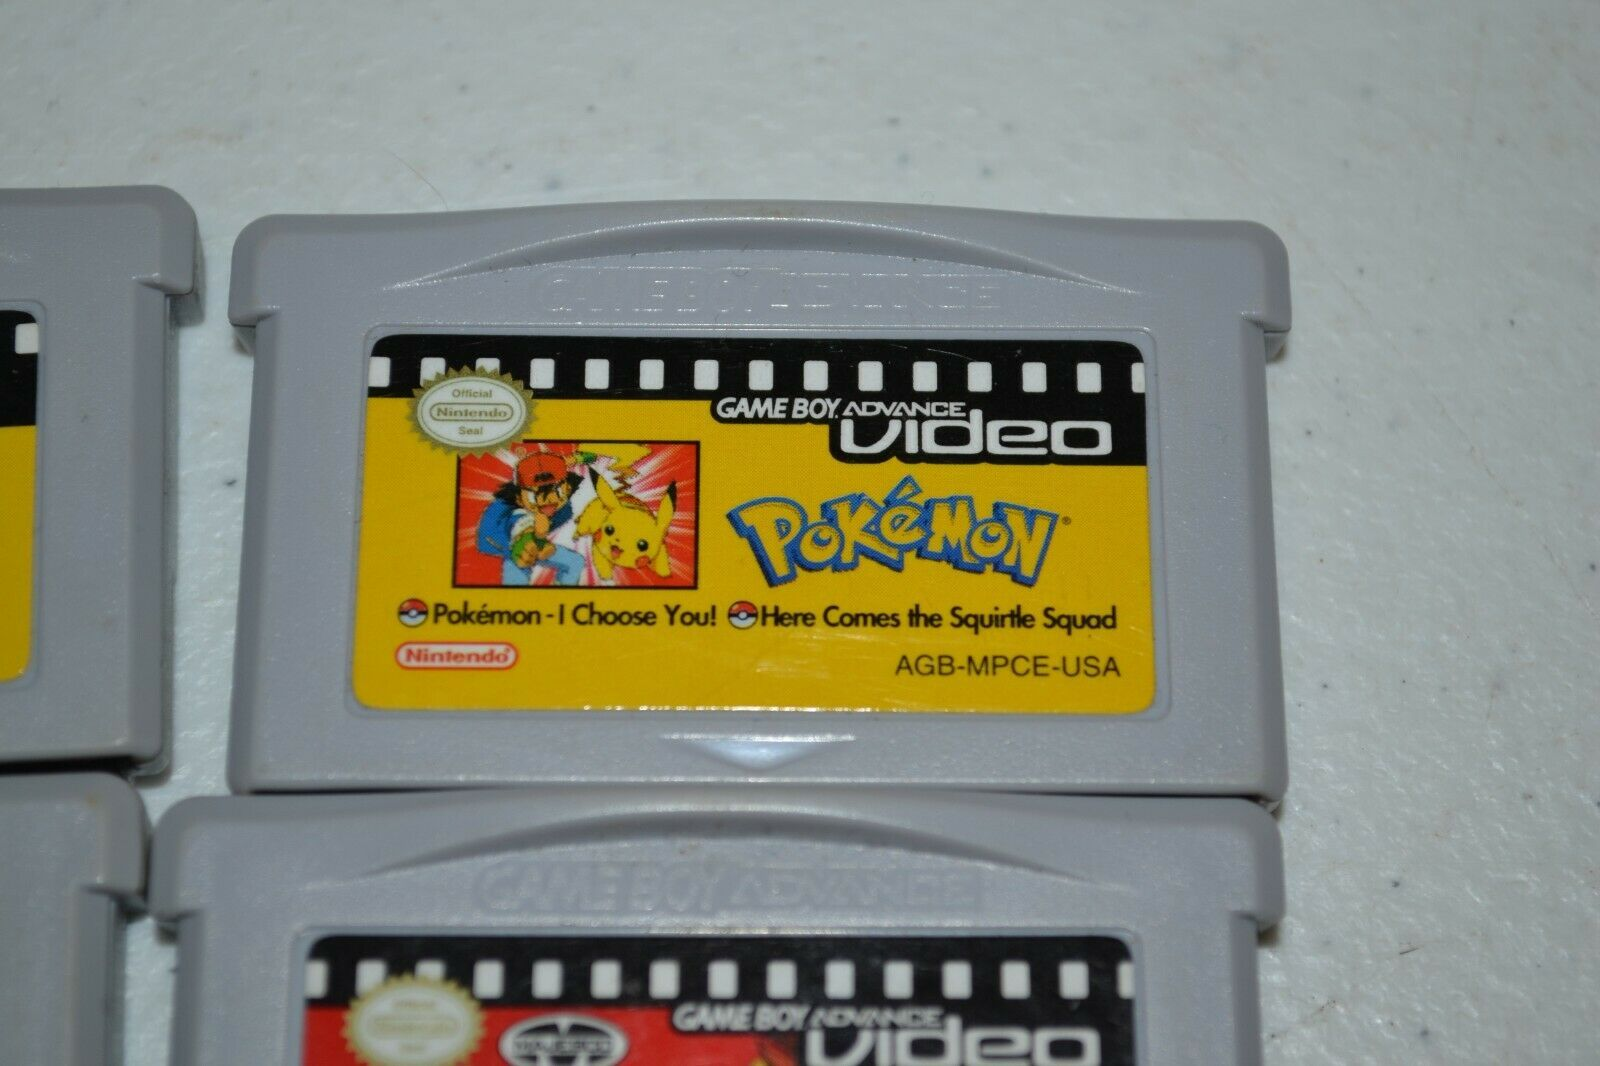 Pokemon Video Nintendo Game Boy Advance LOT of 3 Plus Dragonball GT GBA